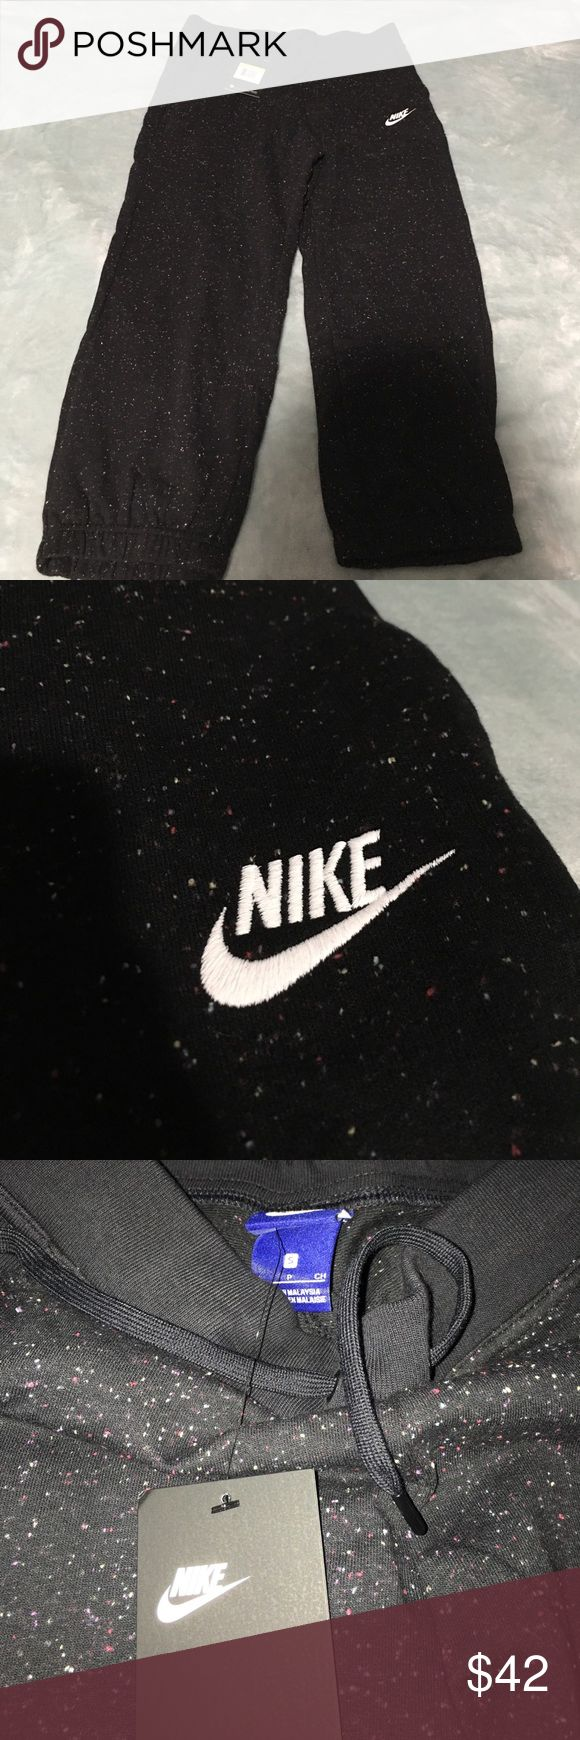 Nike capris Brand new with tag, black with confetti coloring on them, has two pockets Nike Pants Capris